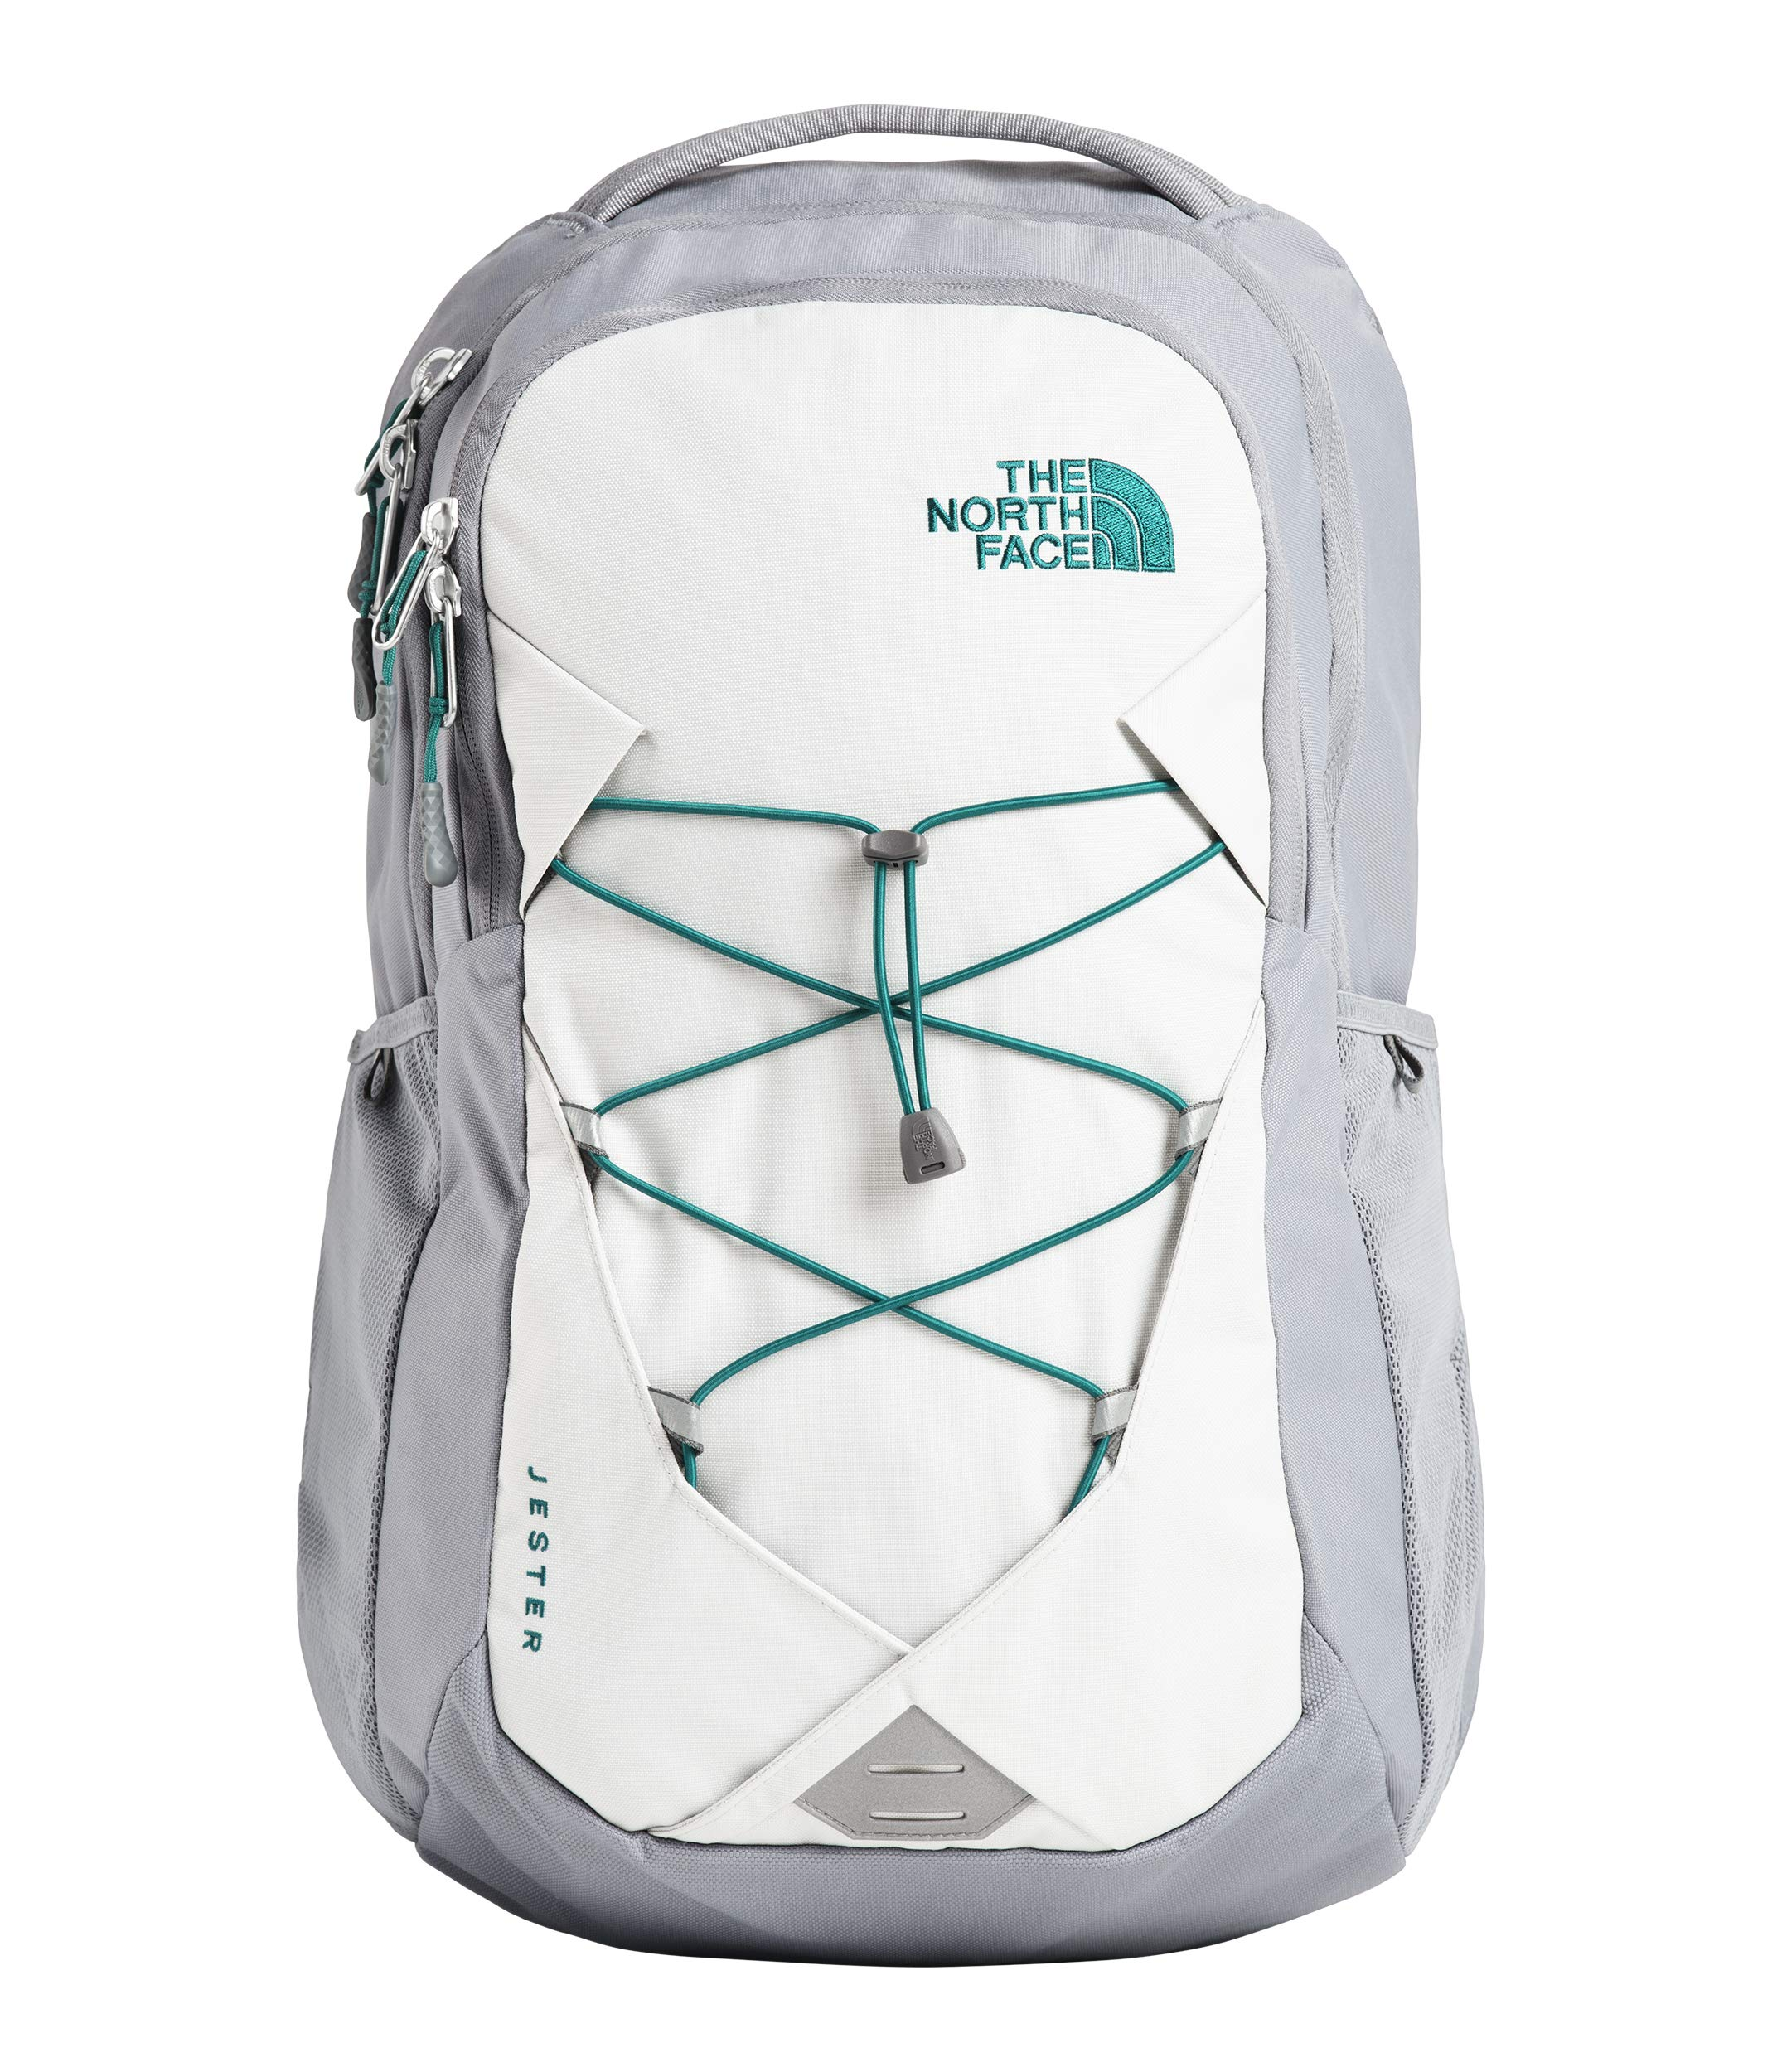 The North Face Women's Jester Backpack Mid Grey/Tin Grey One Size by The North Face